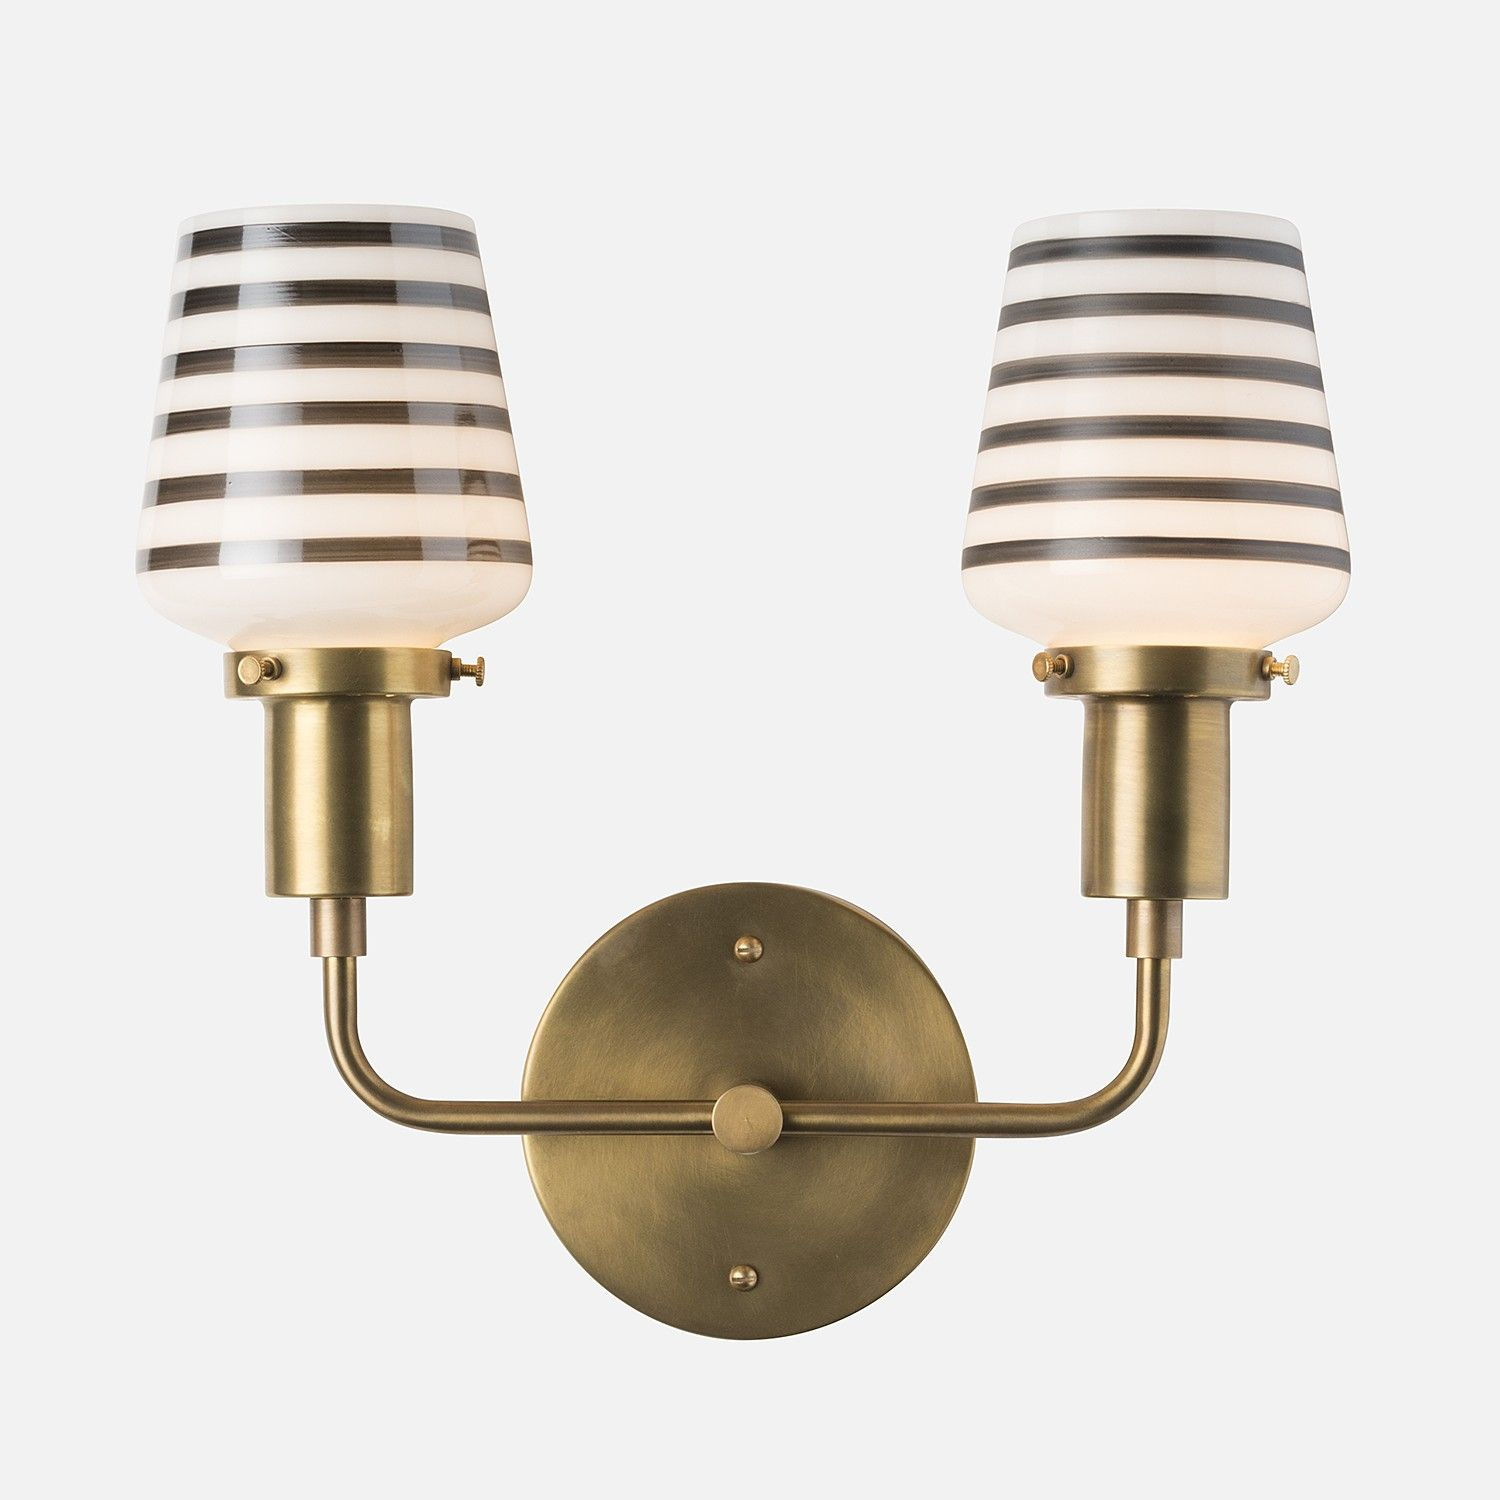 brass bathroom lighting fixtures. Abrams Double Sconce | Wall Lighting Natural Brass Striped Opal Shade Schoolhouse Electric Bathroom Fixtures